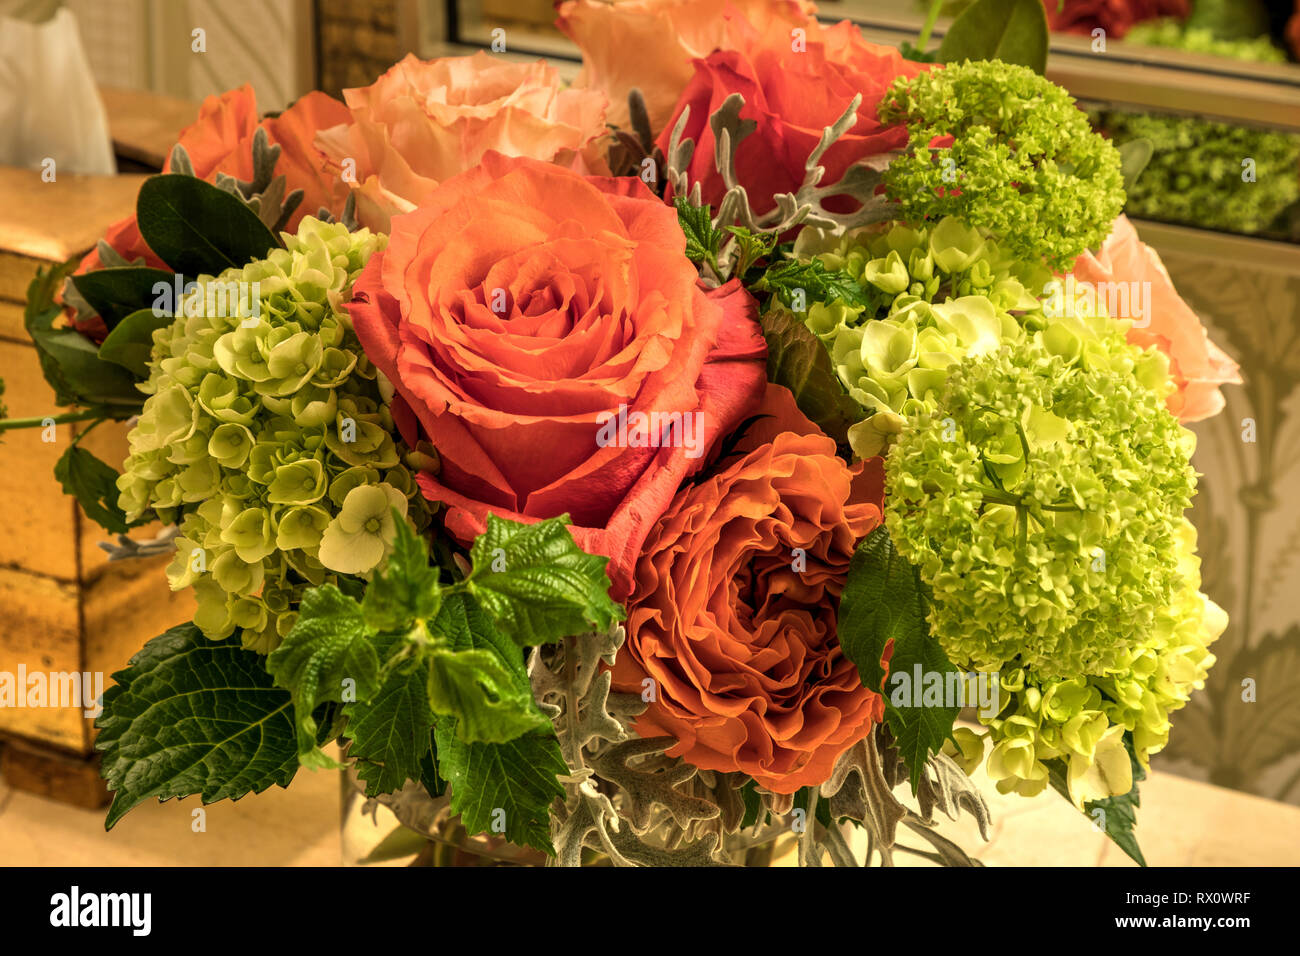 Pale Bouquet Of Pink Orange And White Roses With Green Hydrangea Flowers Stock Photo Alamy